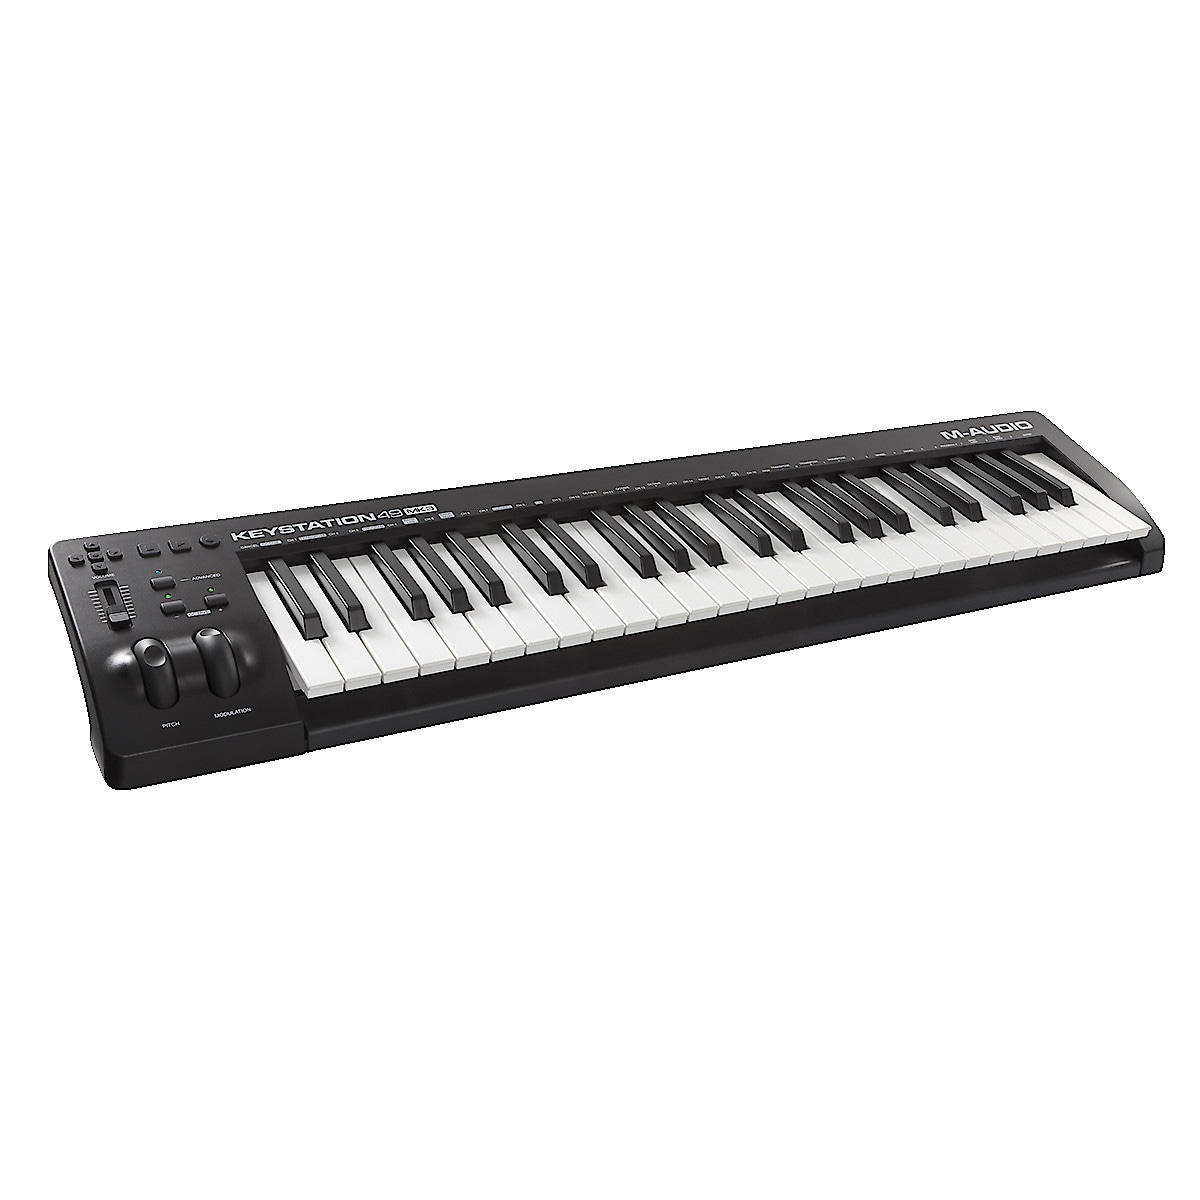 USB-kontroller, Keyboard M-Audio Keystation 49 MK3